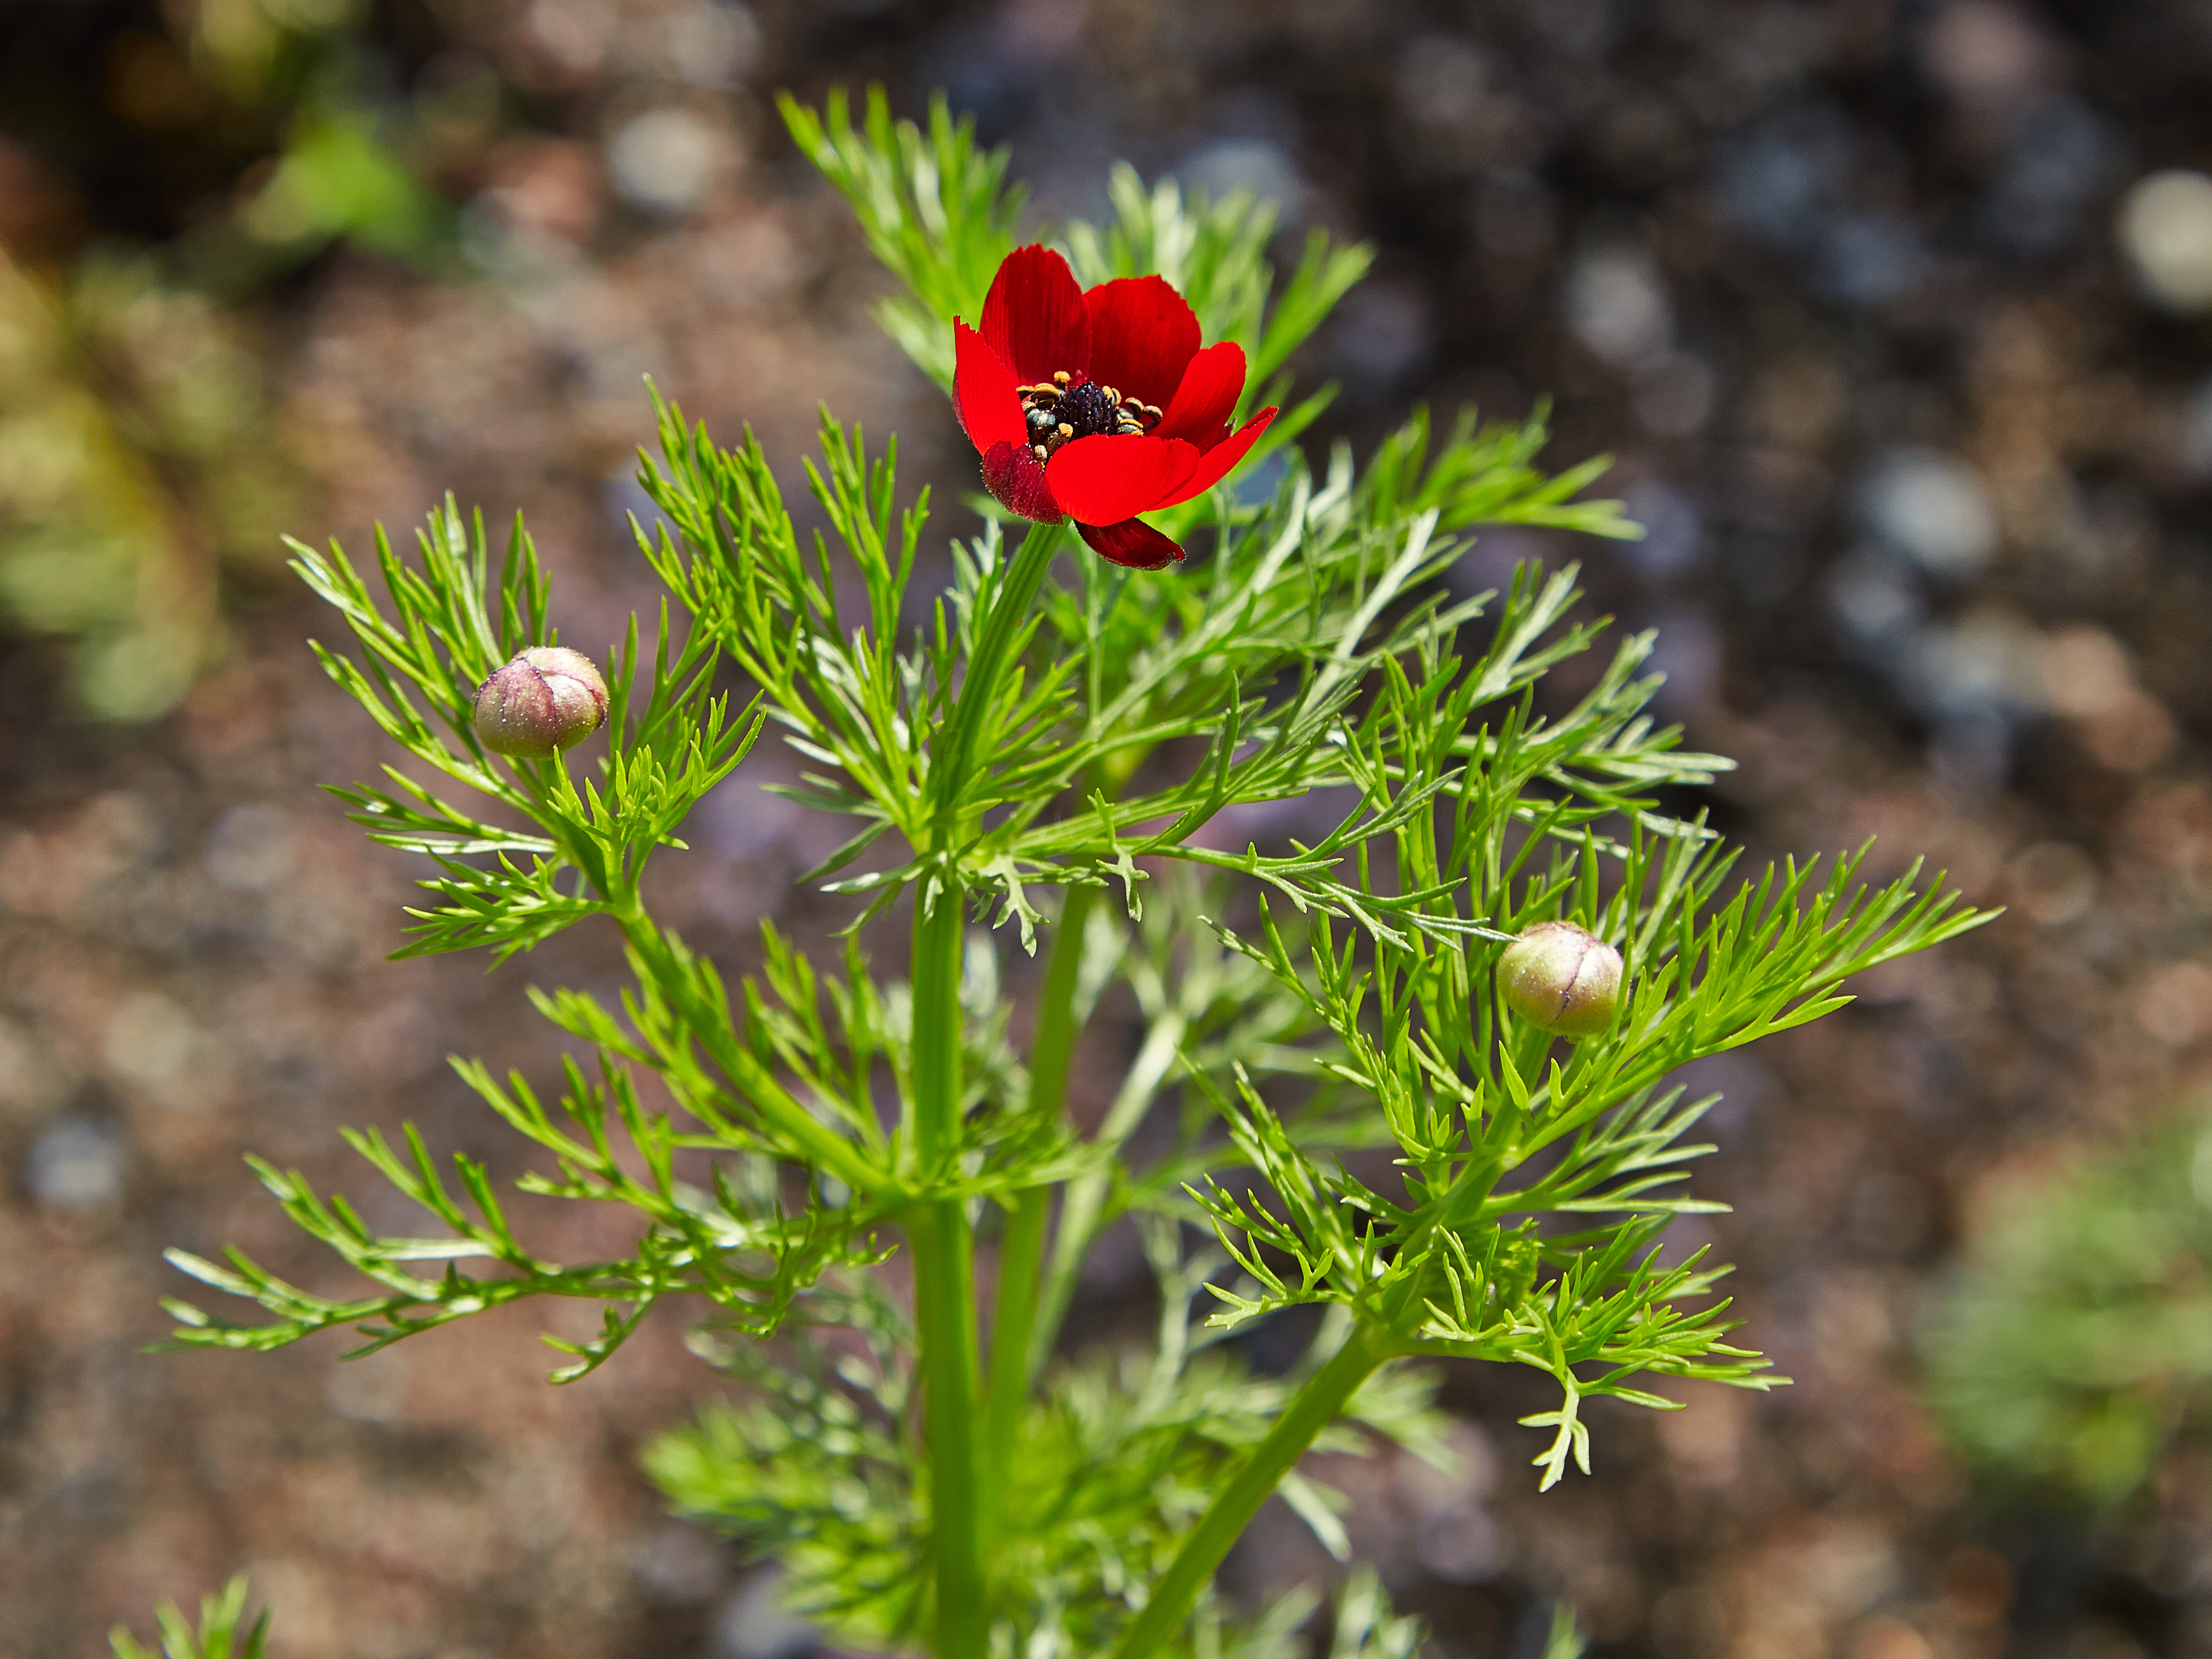 Peasant's eye (Adonis annua) with a bright red flower with a black center and feathered leaves